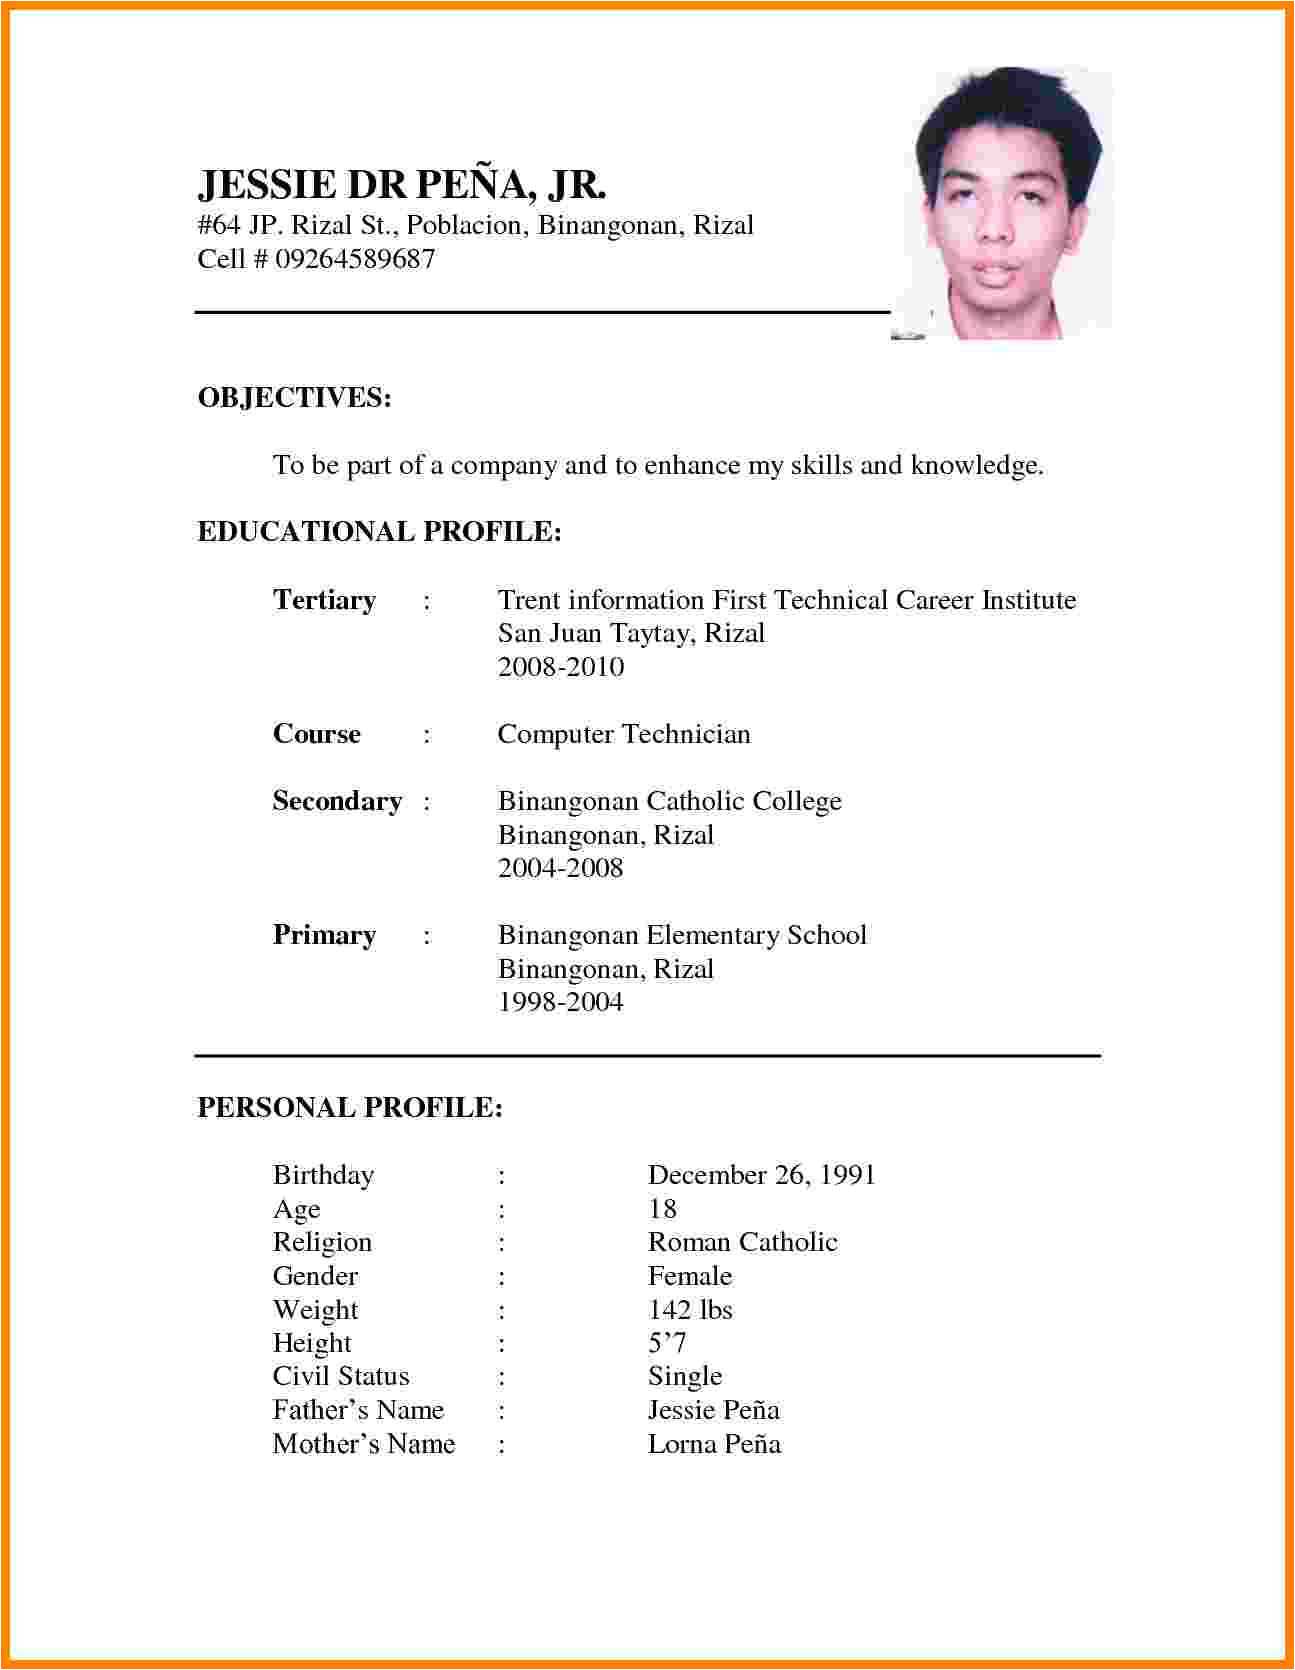 Format Of Resume for Job Application to Download 11 Cv formats Samples for Job theorynpractice